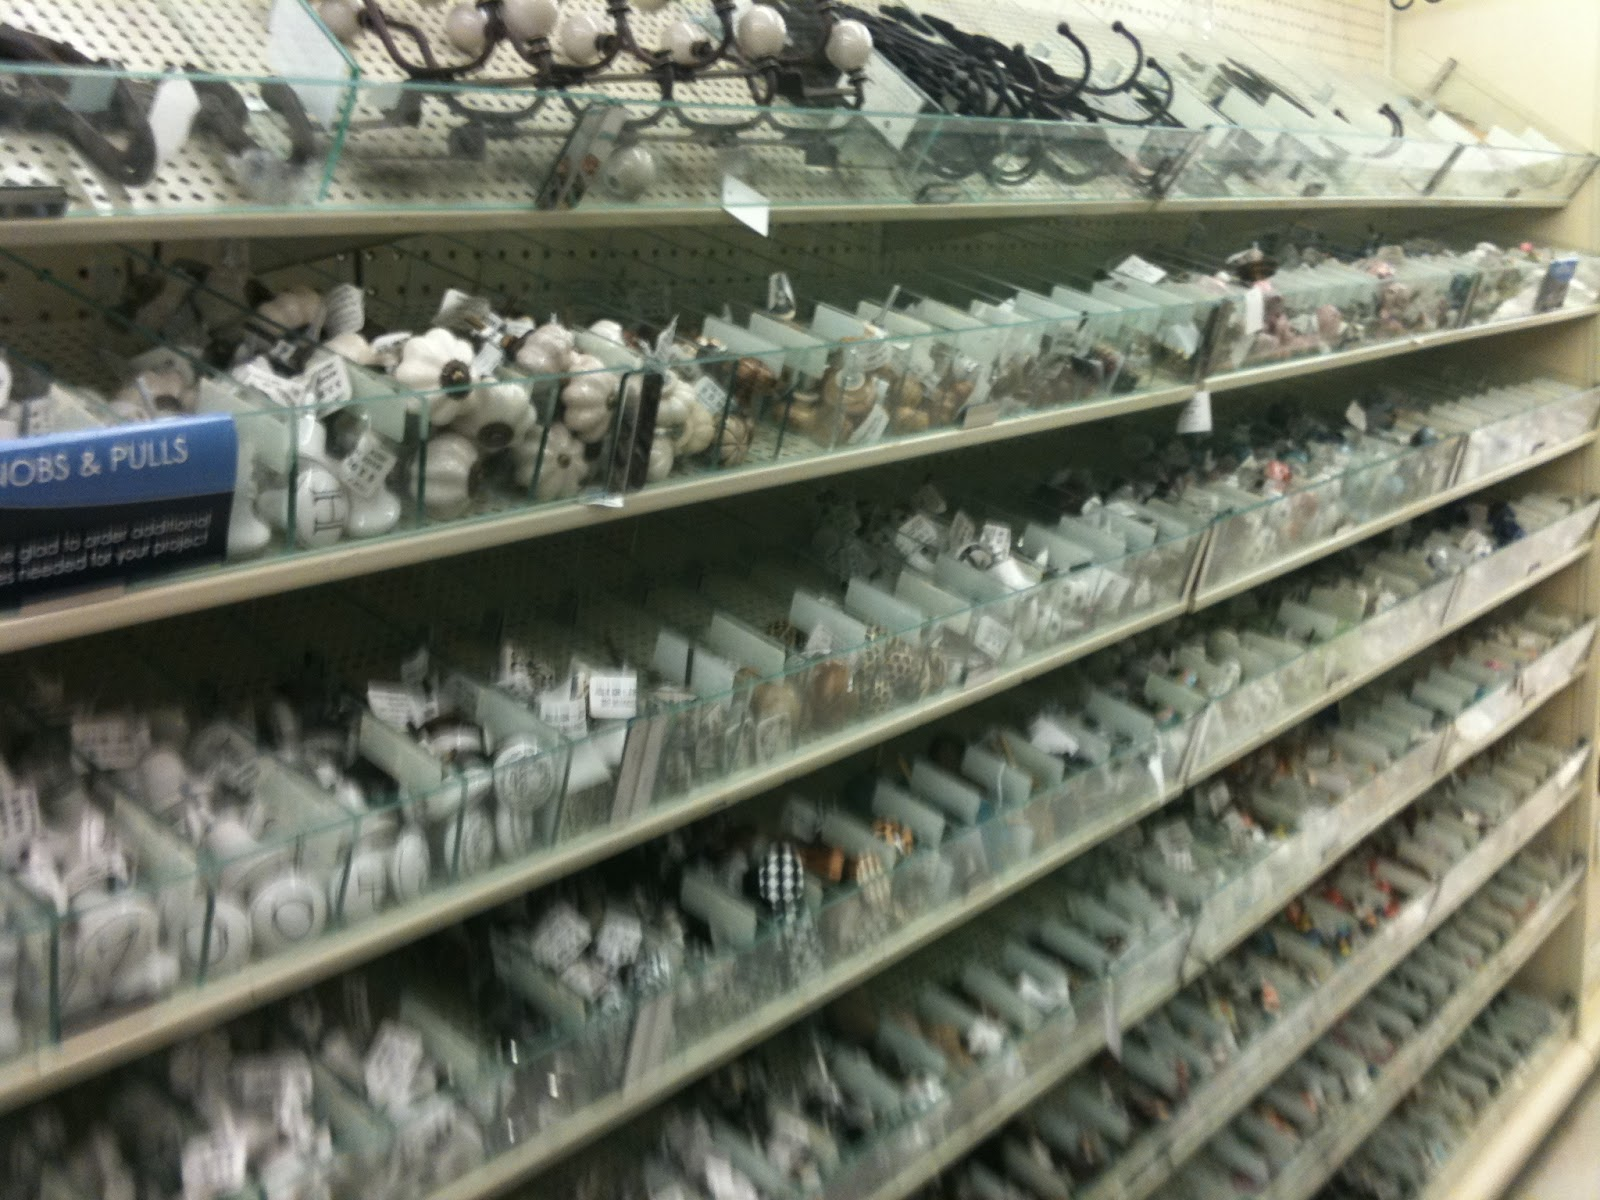 Two Men and a Little Farm: KNOBS AND PULLS AT HOBBY LOBBY